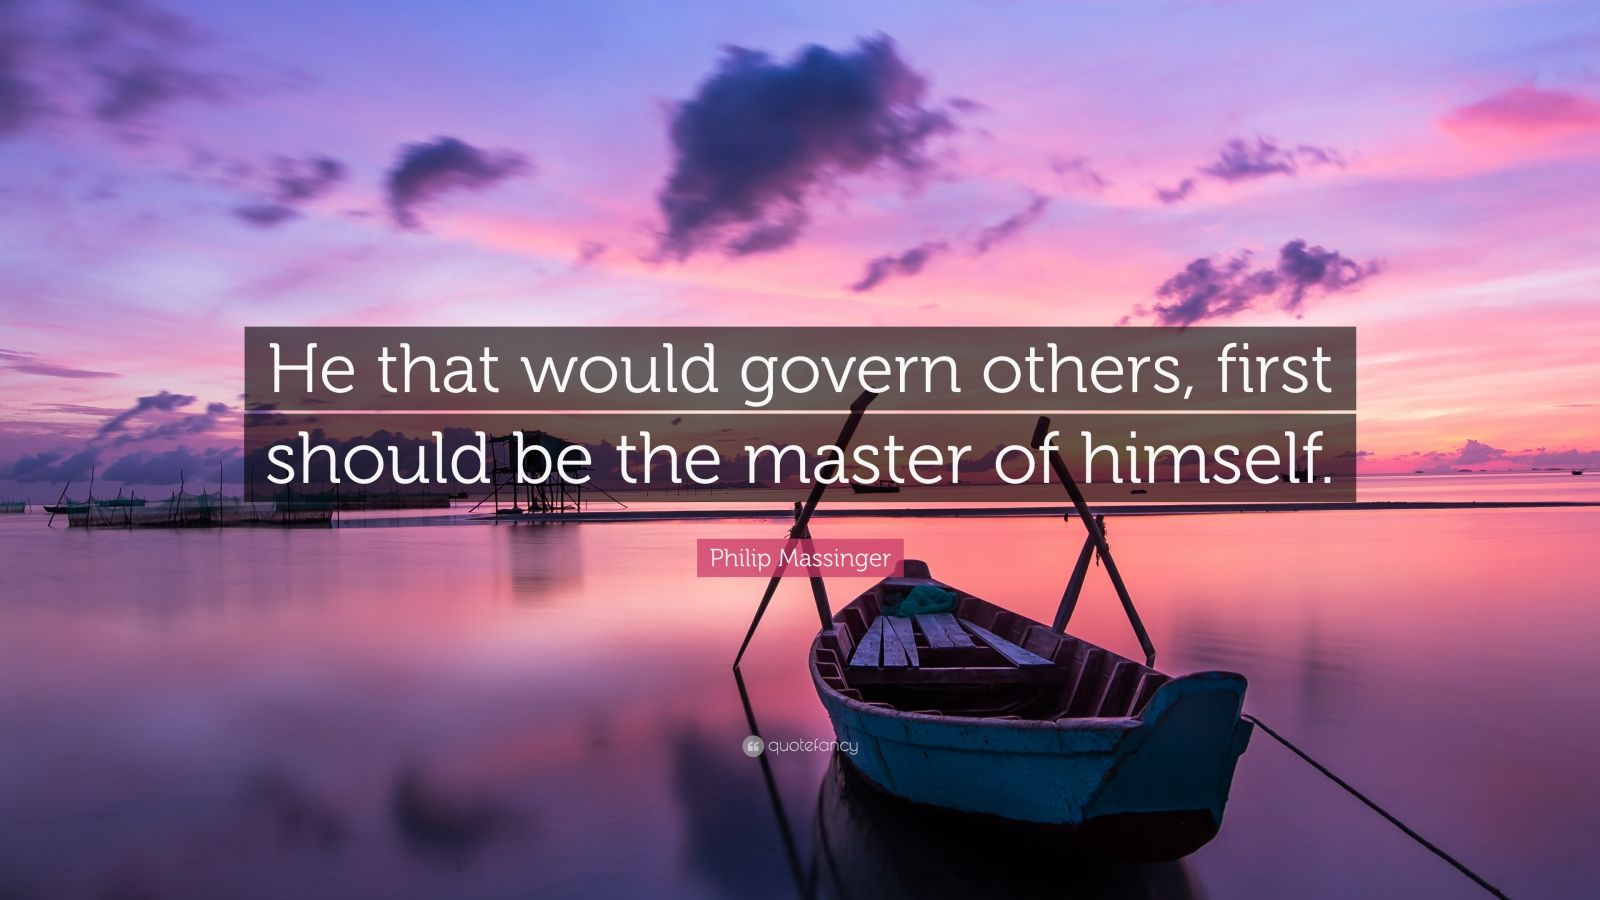 """Philip Massinger Quote: """"He that would govern others, first should be the master of himself."""""""